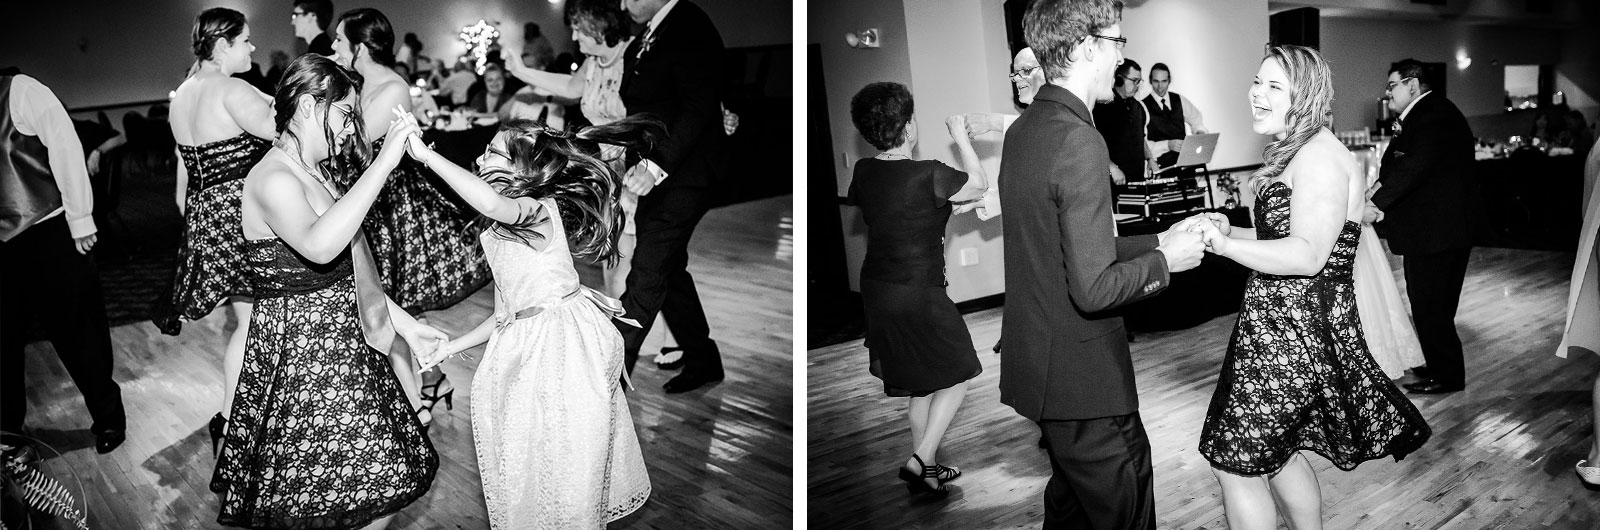 Eric_and_Christy_Photography_Blog_Shelby_Dony_Wedding-44-45